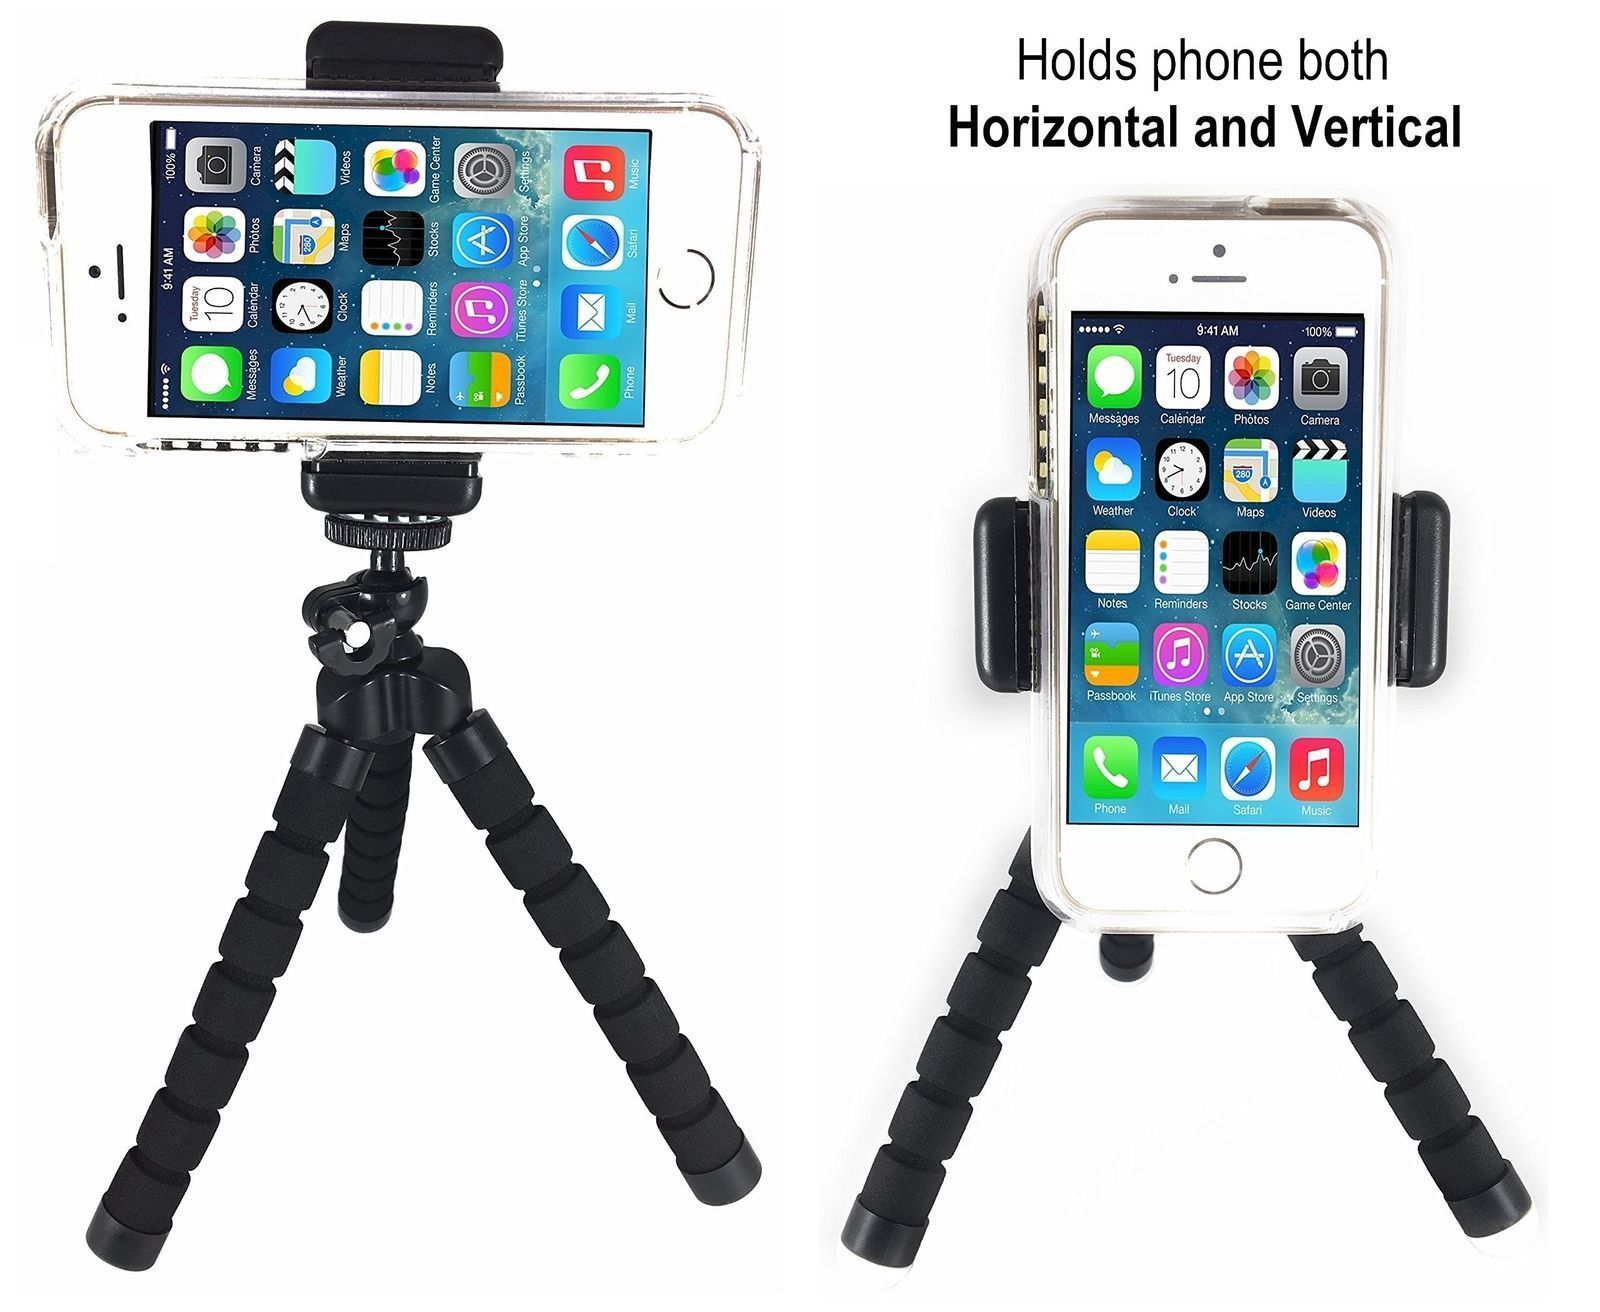 Flexible Mini Tripod Flexible Mount Holder Bluetooth Remote Shutter Phone Stand